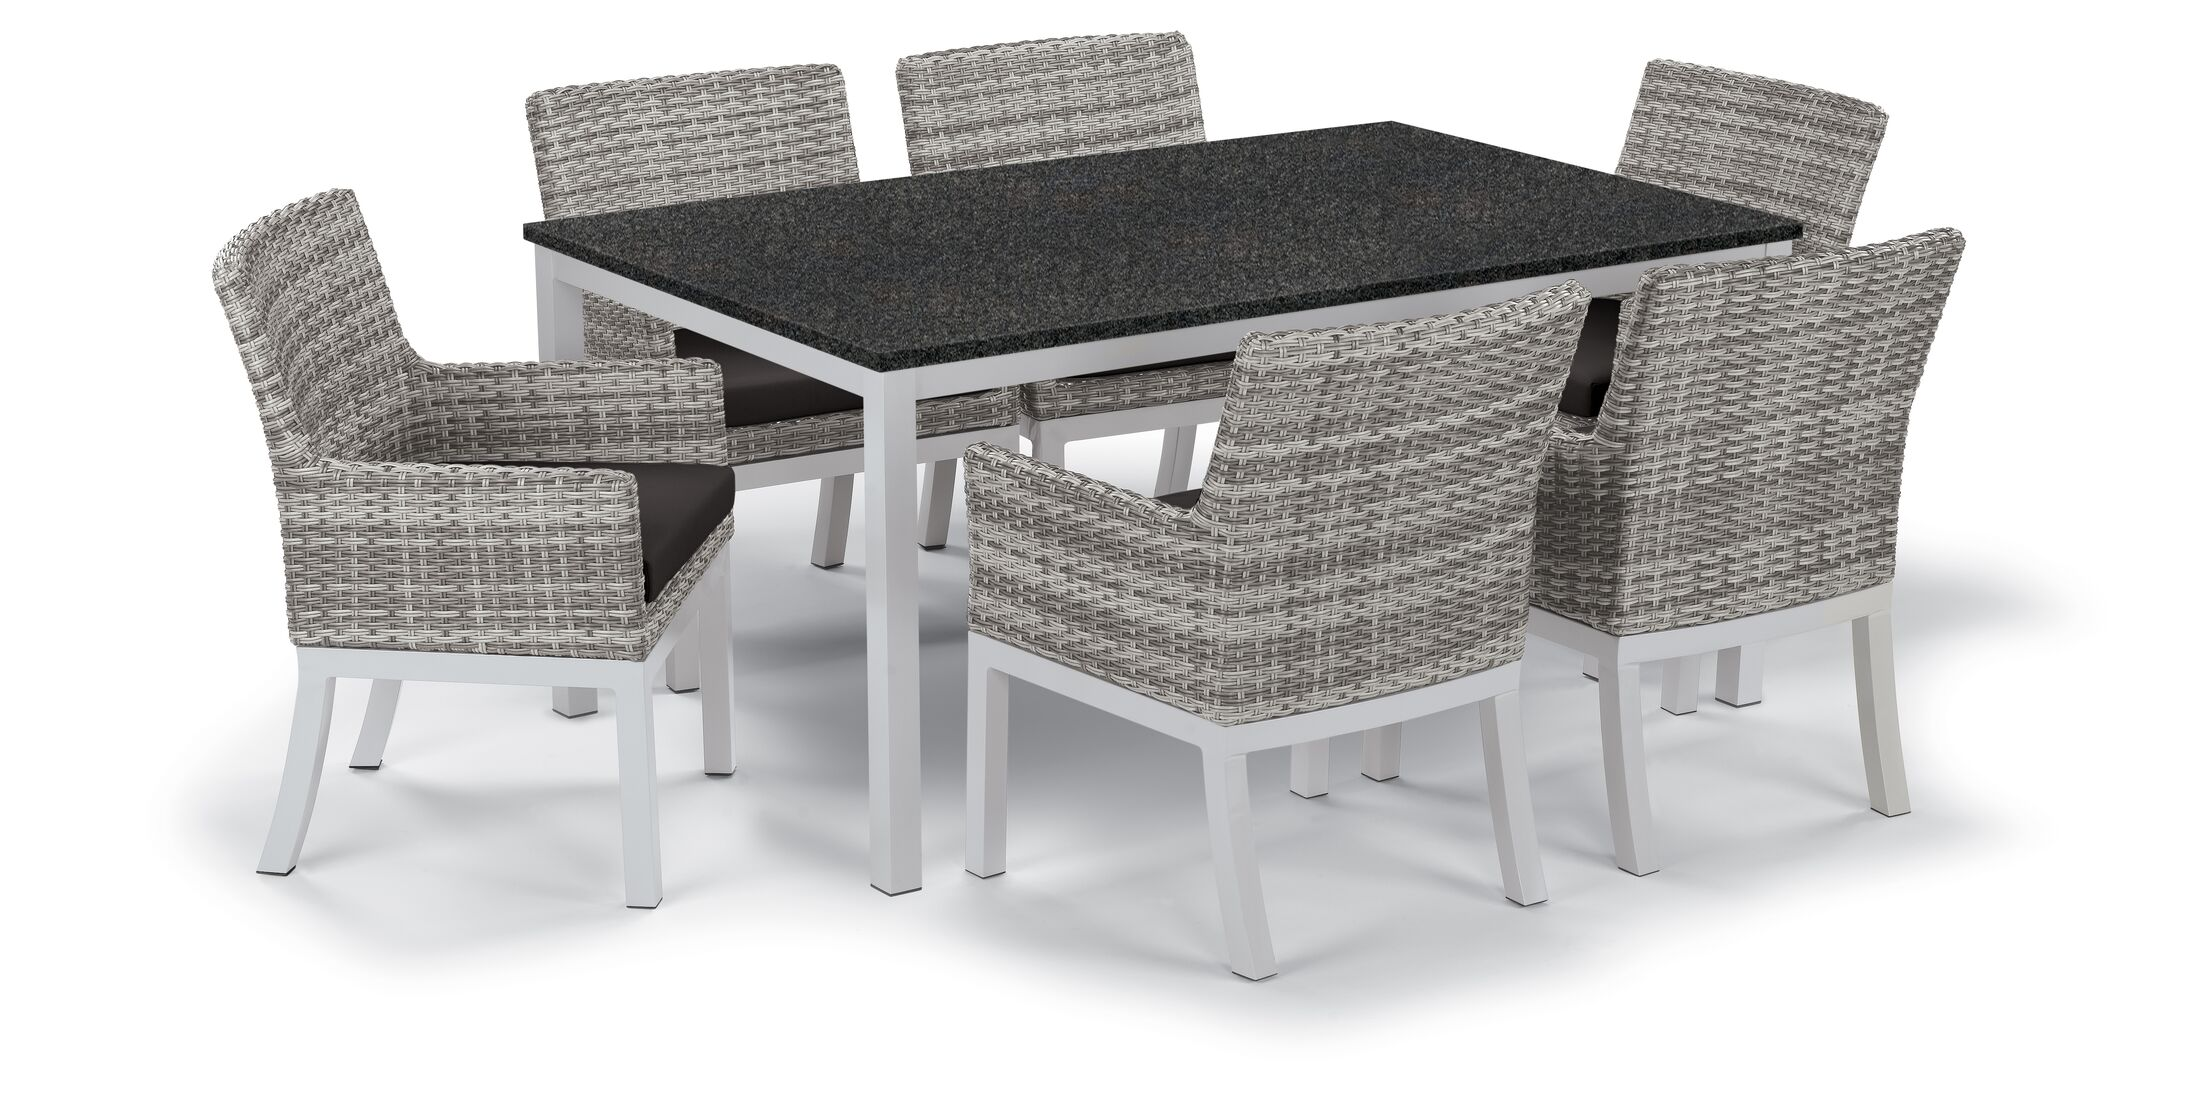 Farmington Wicker 7 Piece Dining Set Cushion Color: Jet Black, Finish: Ash